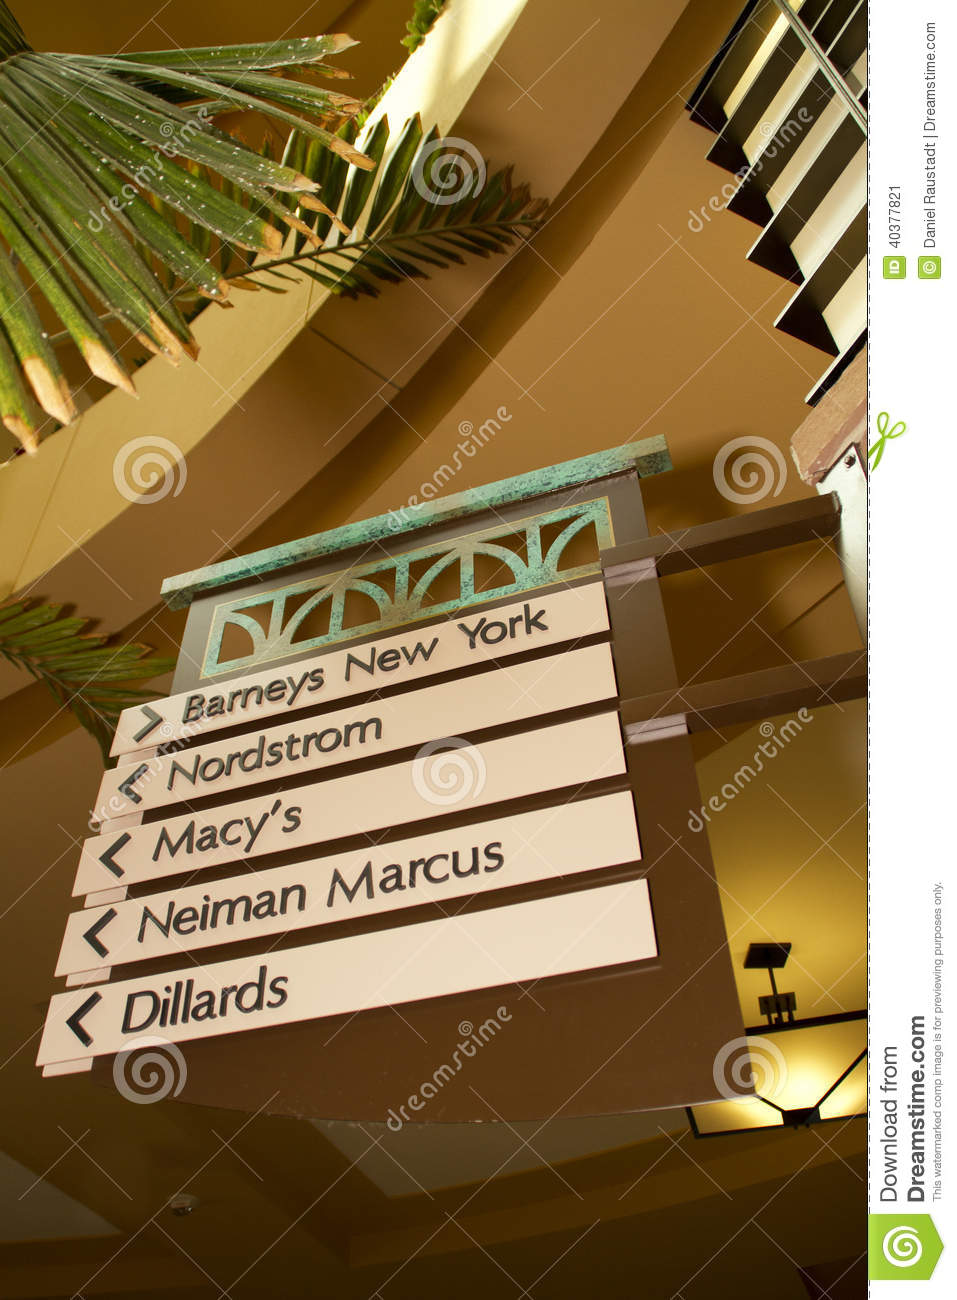 topo_retail-store-shopping-directory-american-mall-sign-arrows-40377821